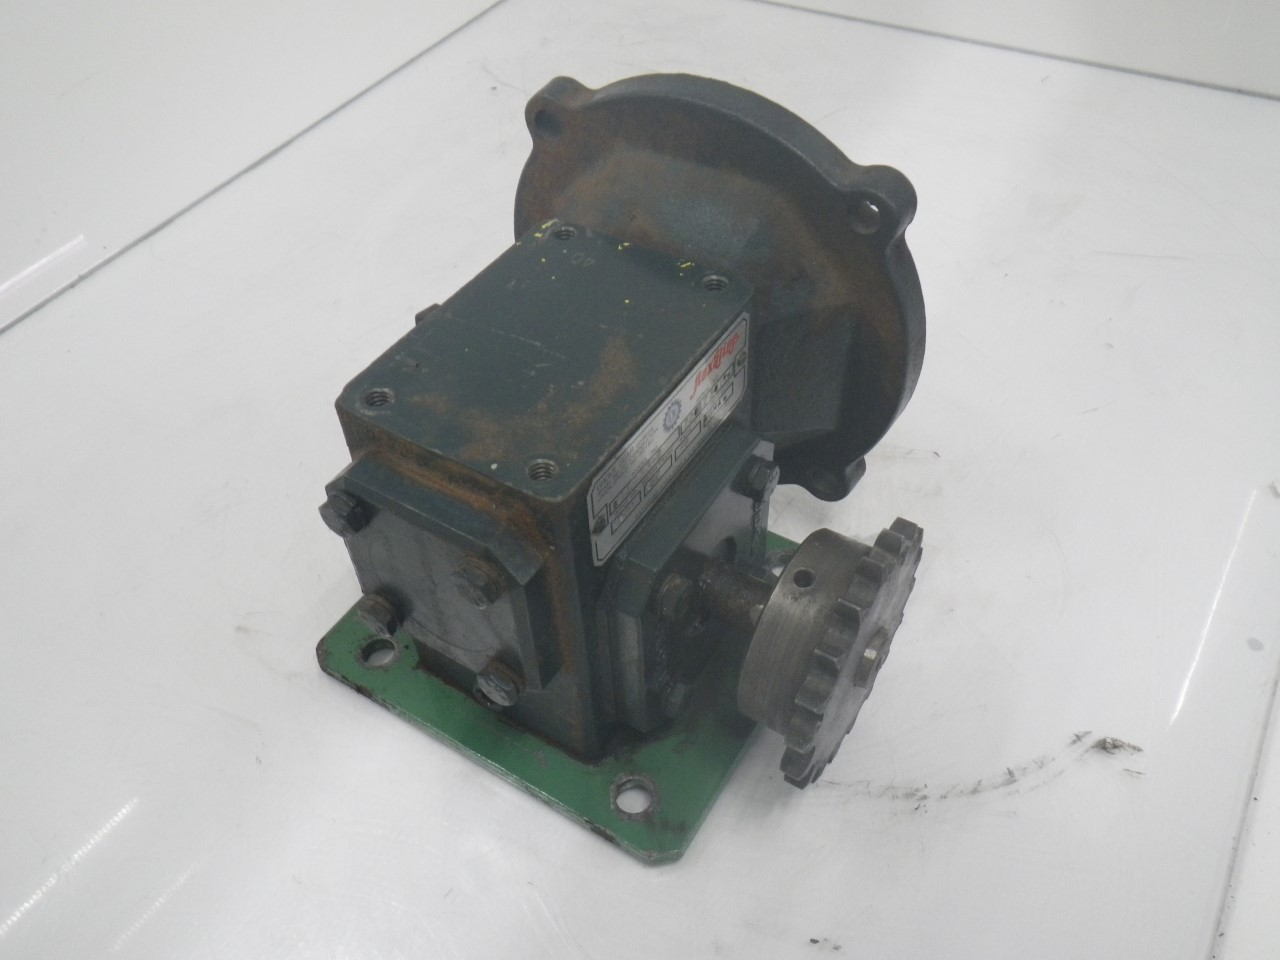 IMGP6972M01133-2 Flexaline GearBox 0.260 inhp, ratio140 motor frame56c (Used Tested) (3)